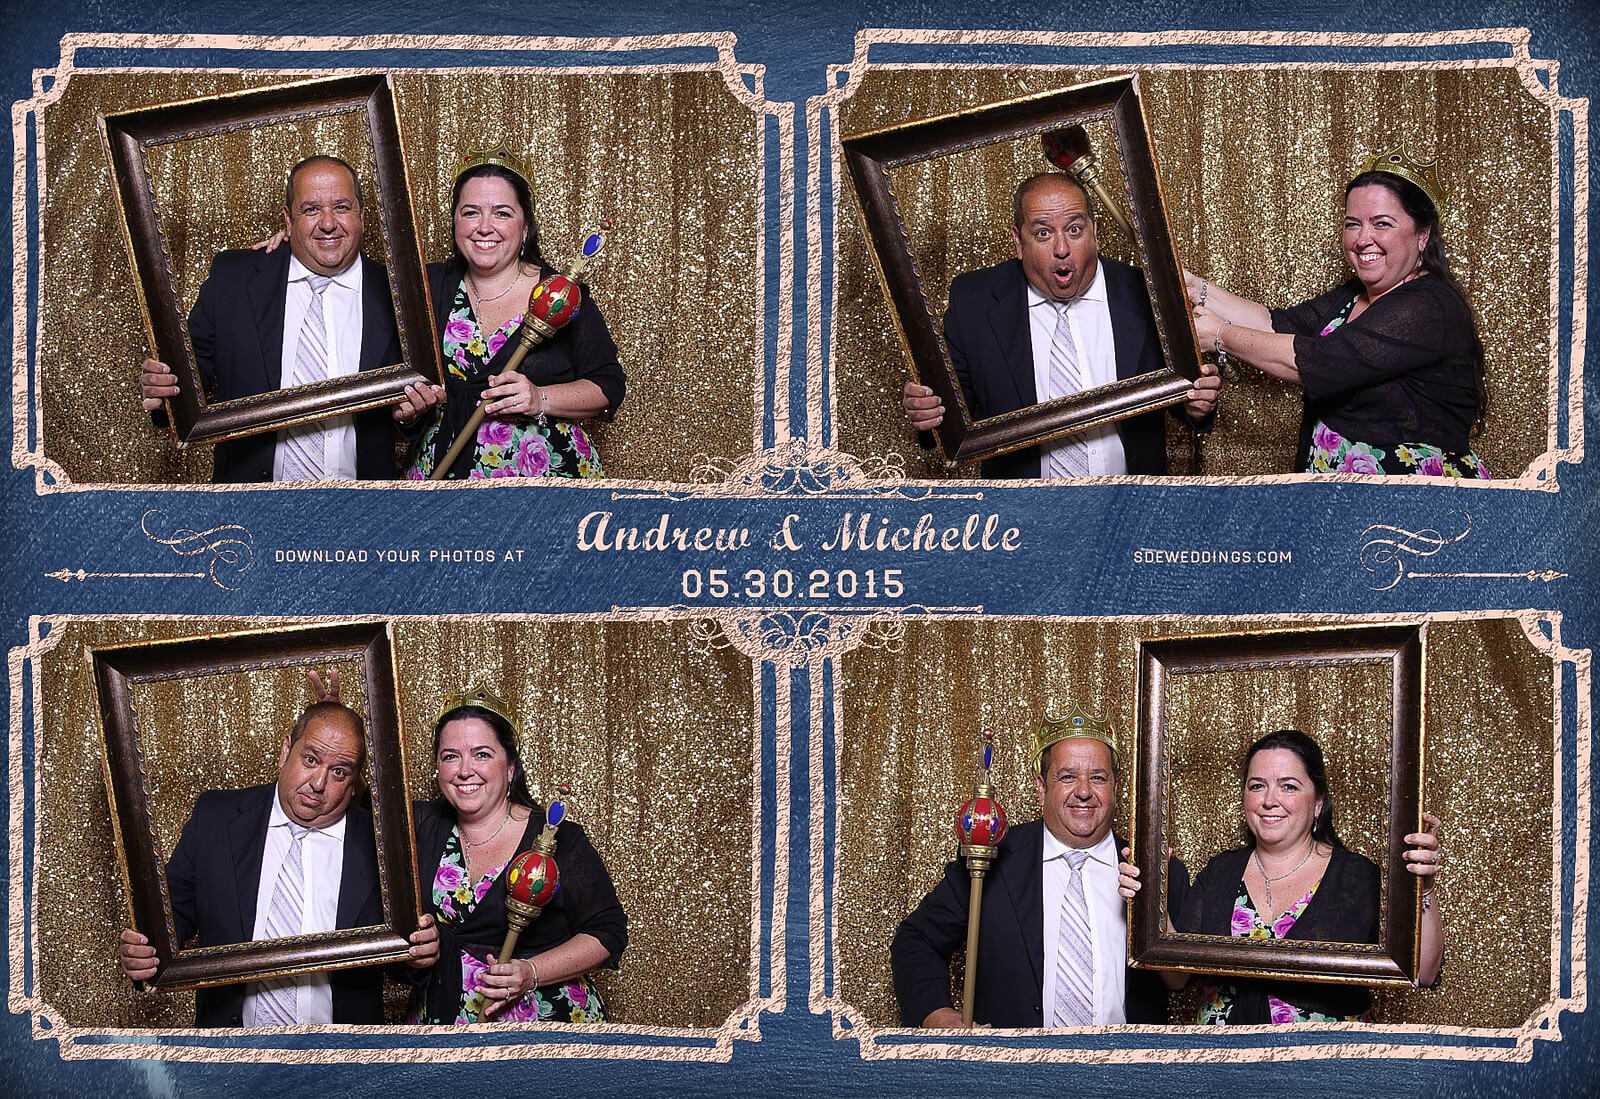 Toronto Police Wedding Photobooth at Peel Regional Police Association Banquet Hall 4